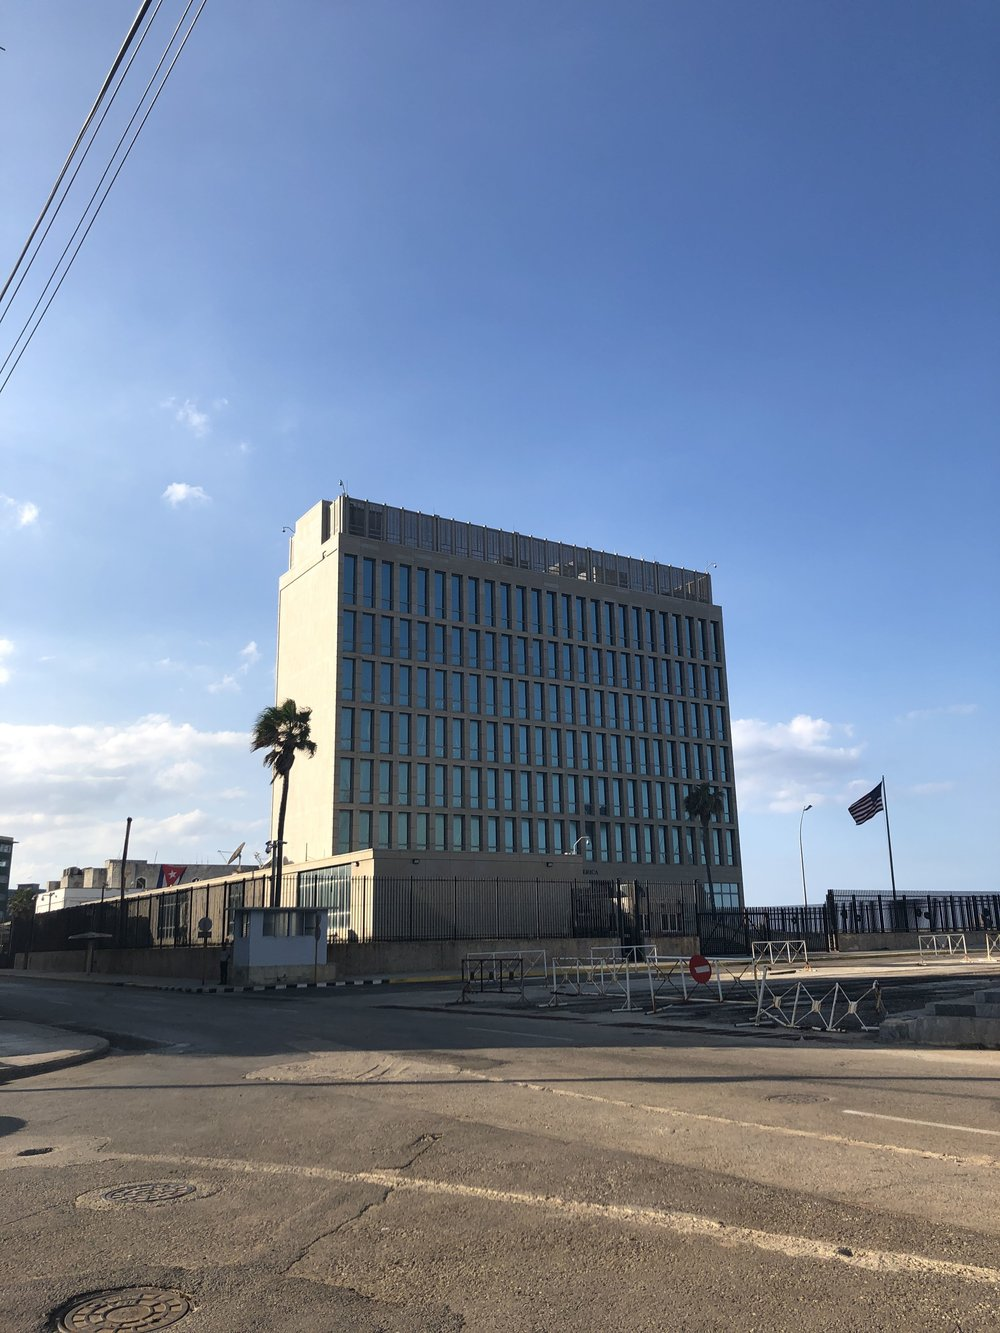 The U.S. Embassy